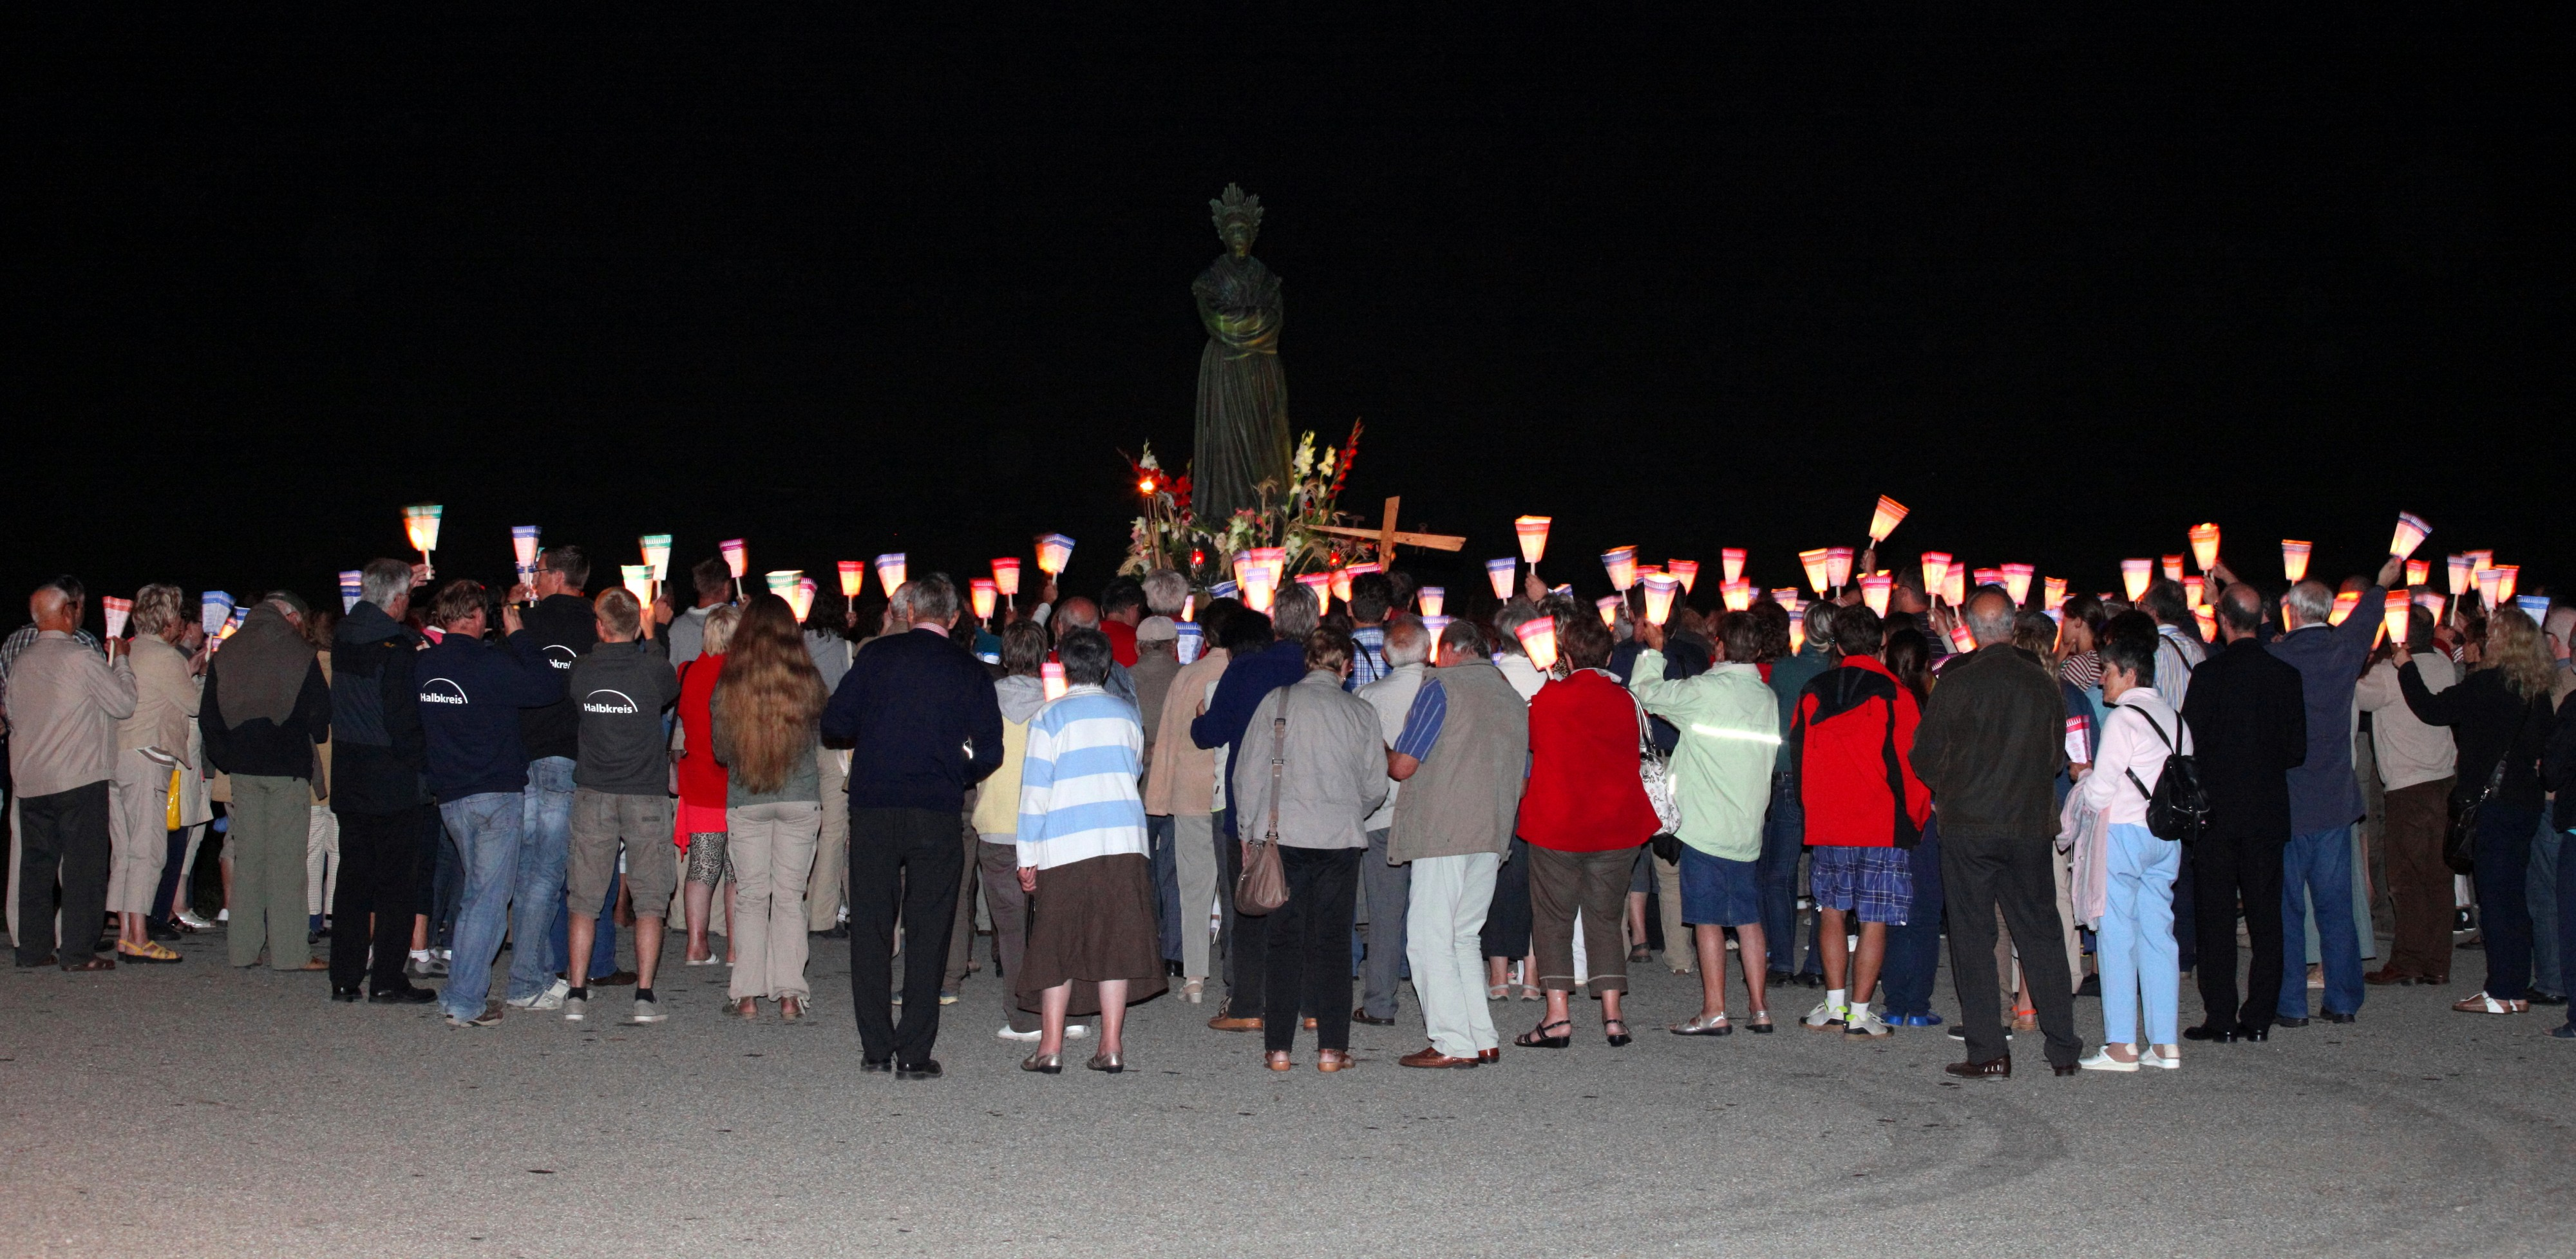 people with candles in the La Salette sanctuary, France, Europe, August 2013, picture 35